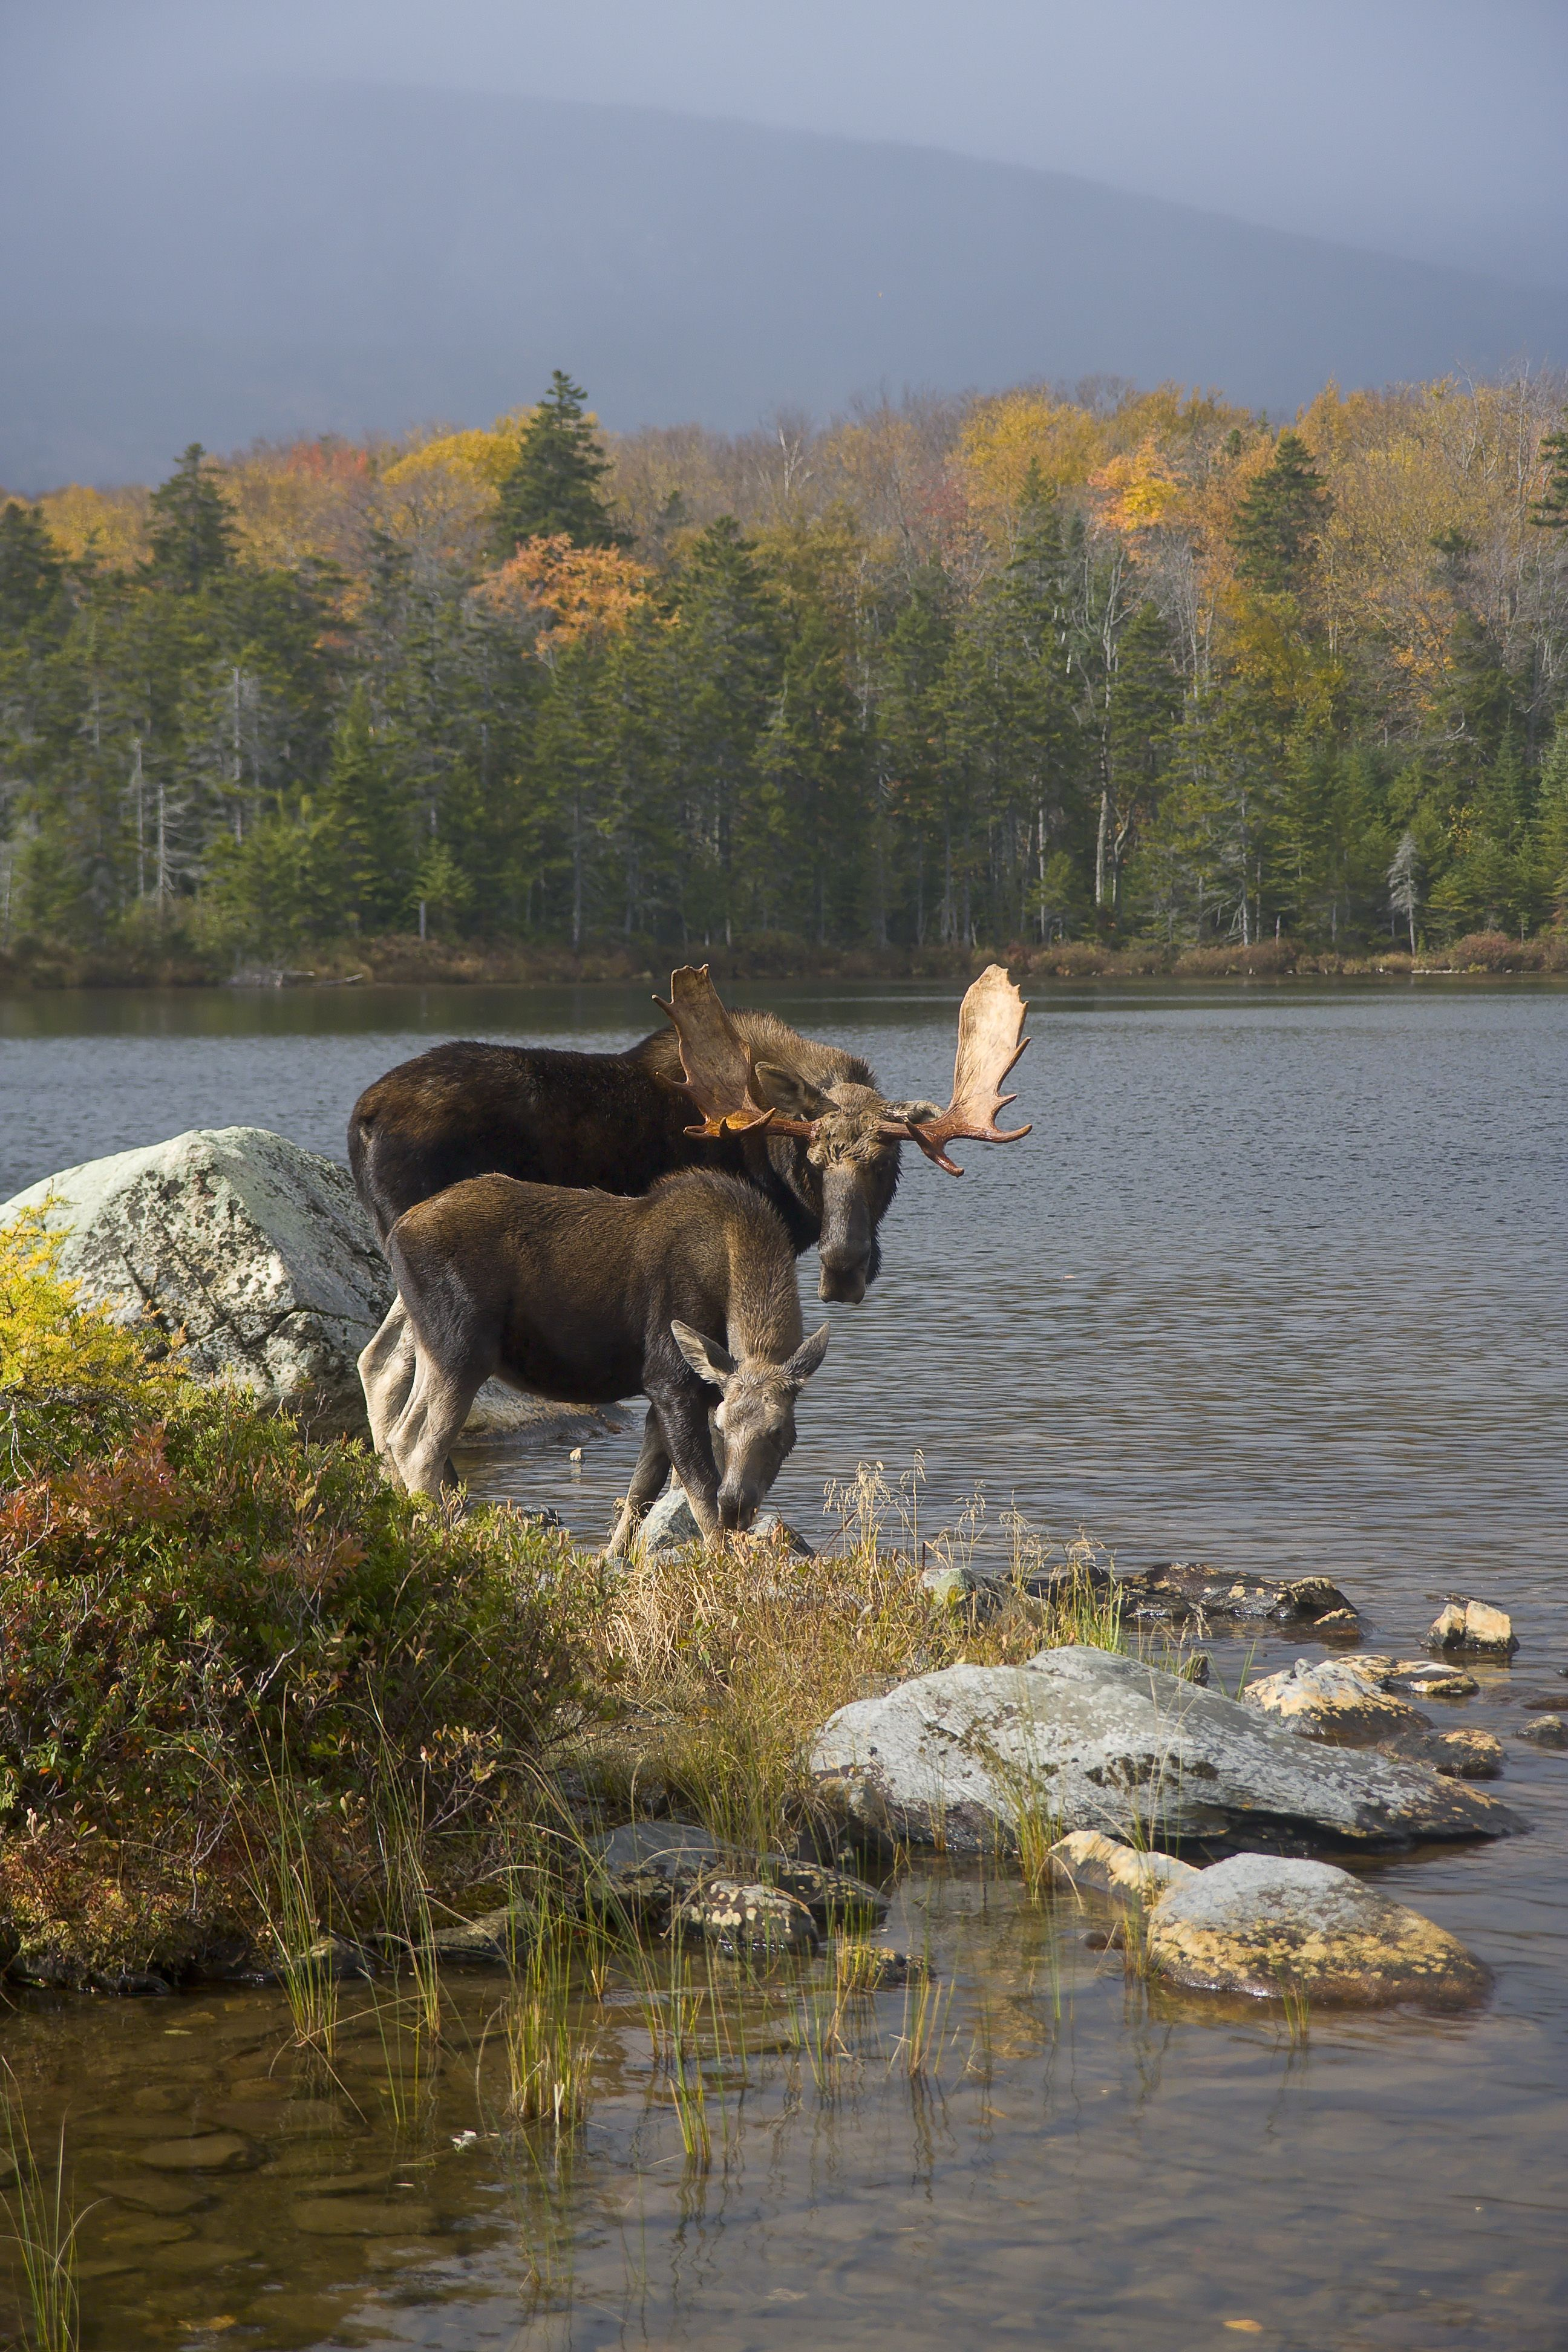 ae6311053a4cd7607cfb6e22c1a76372 moose in maine moose, photo credit and animal